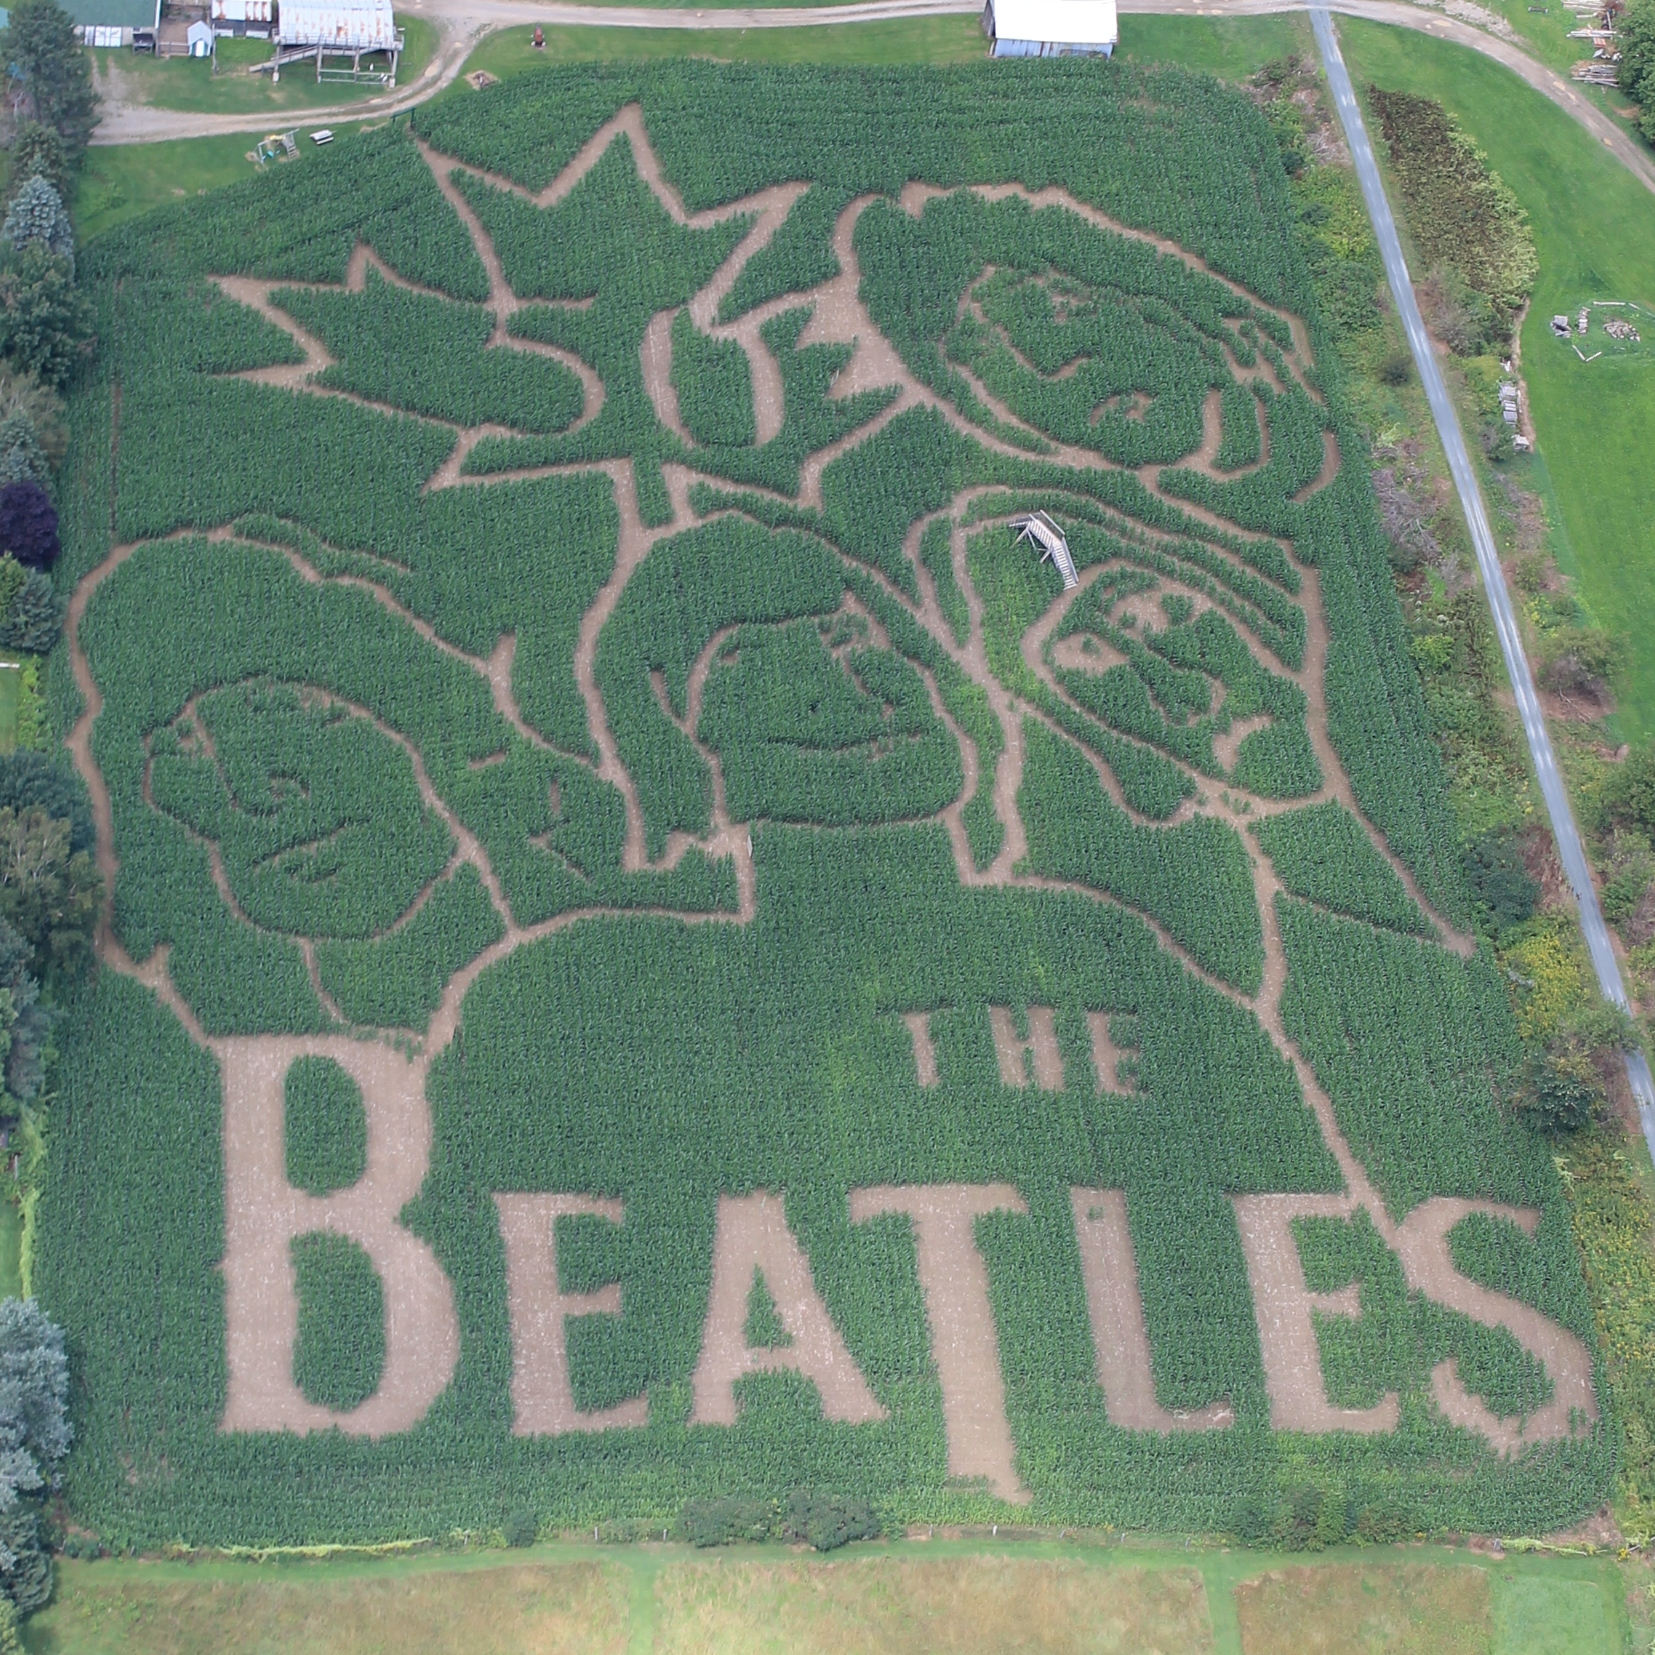 2014: The Beatles  Our 2014 maze celebrated 50 years since the Beatles first arrived in Canada.